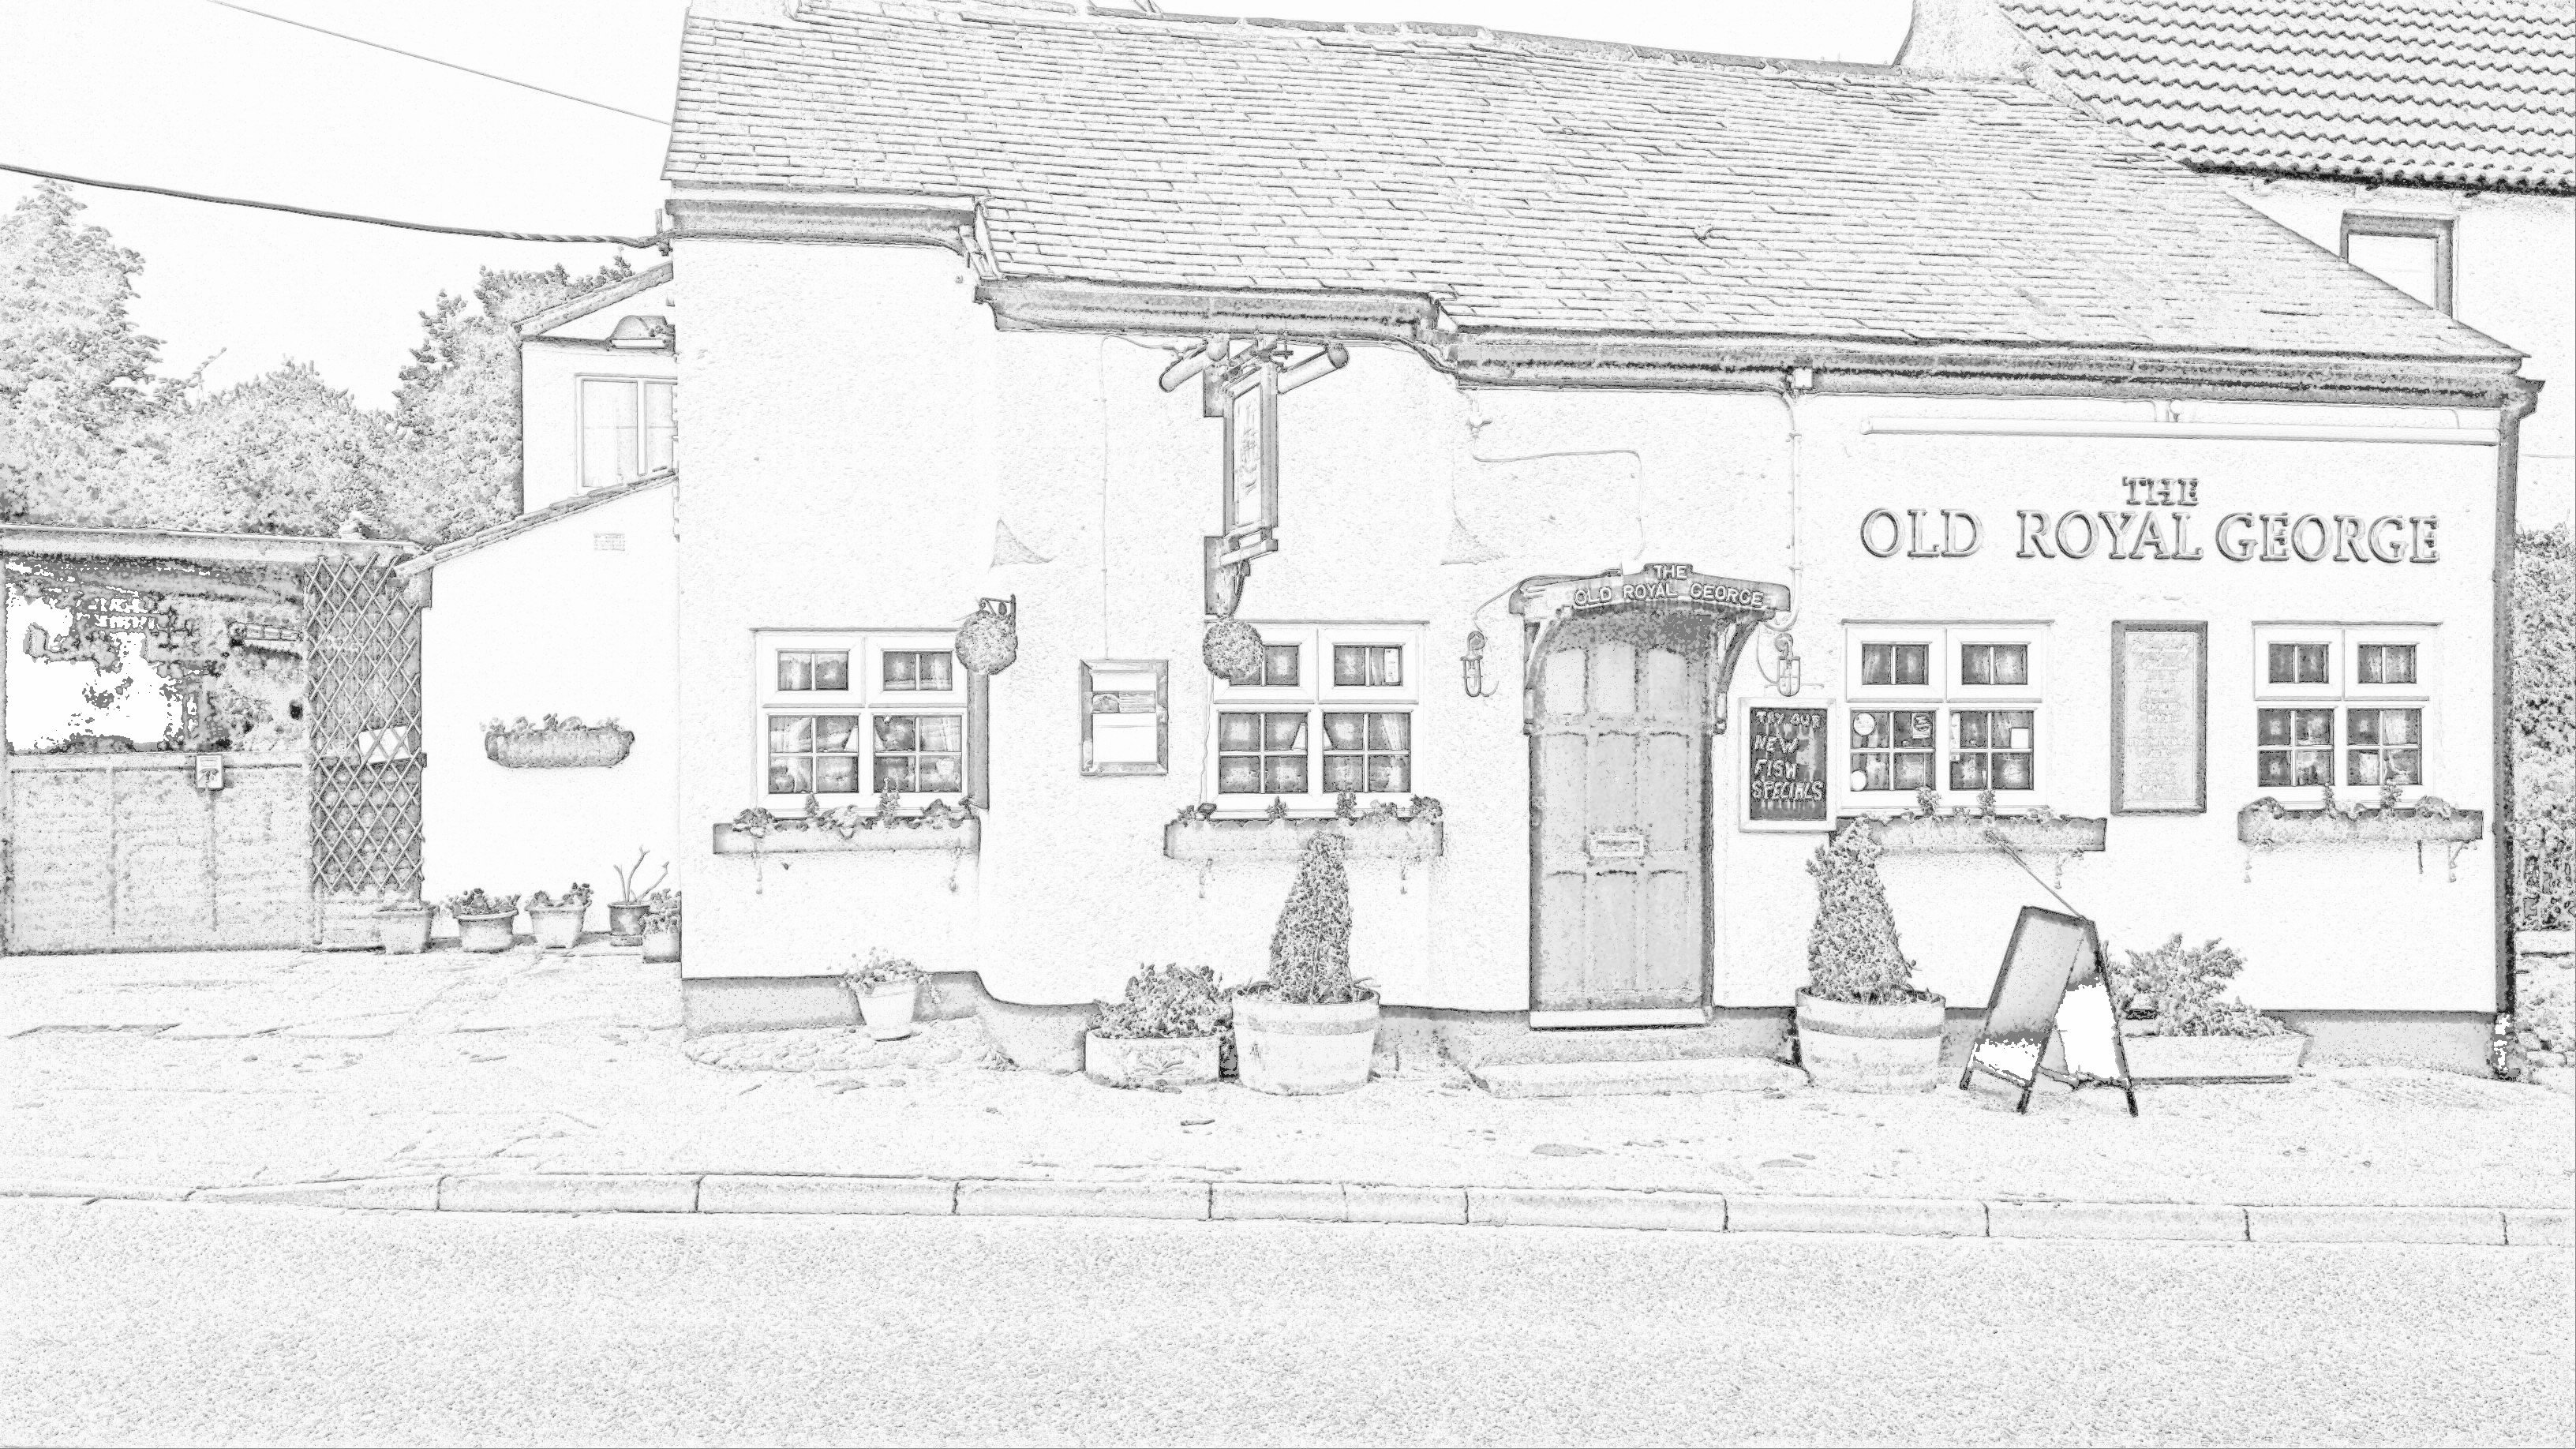 Sketch of Royal George Inn